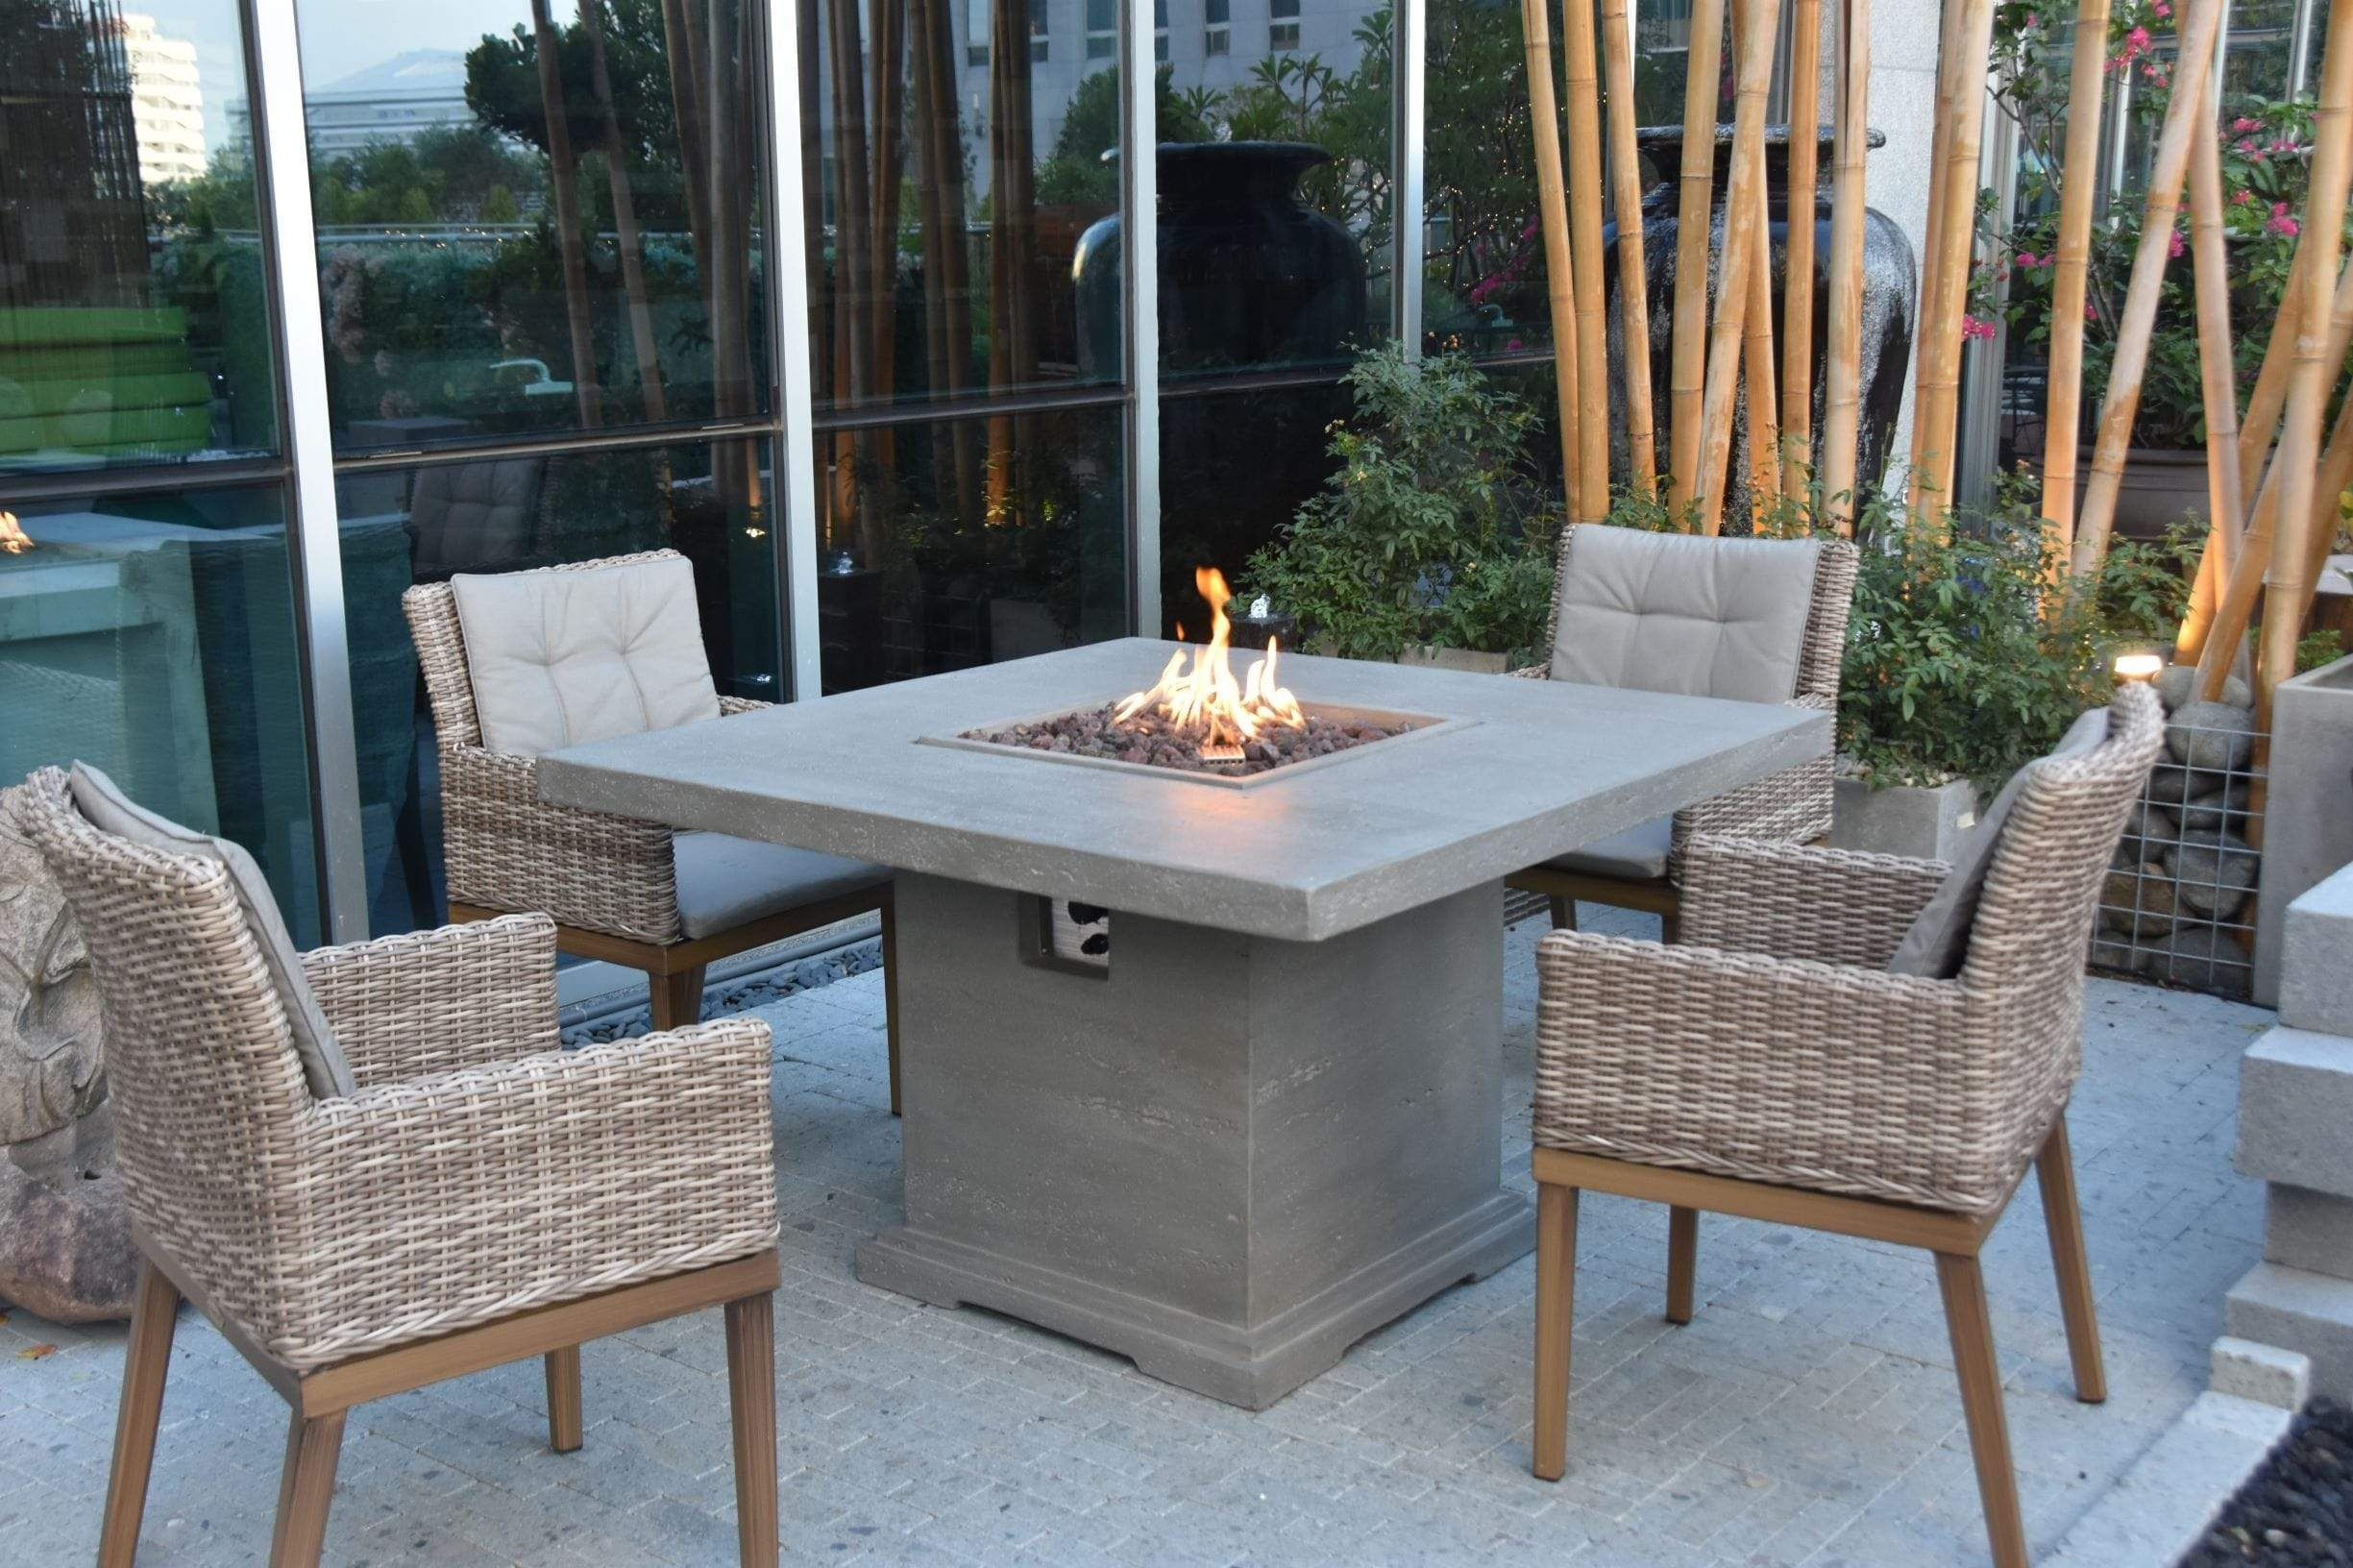 Birmingham Fire Dining Table In 2021 Propane Fire Pit Table Fire Pit Table Propane Fire Pit Modern outdoor fire dining table